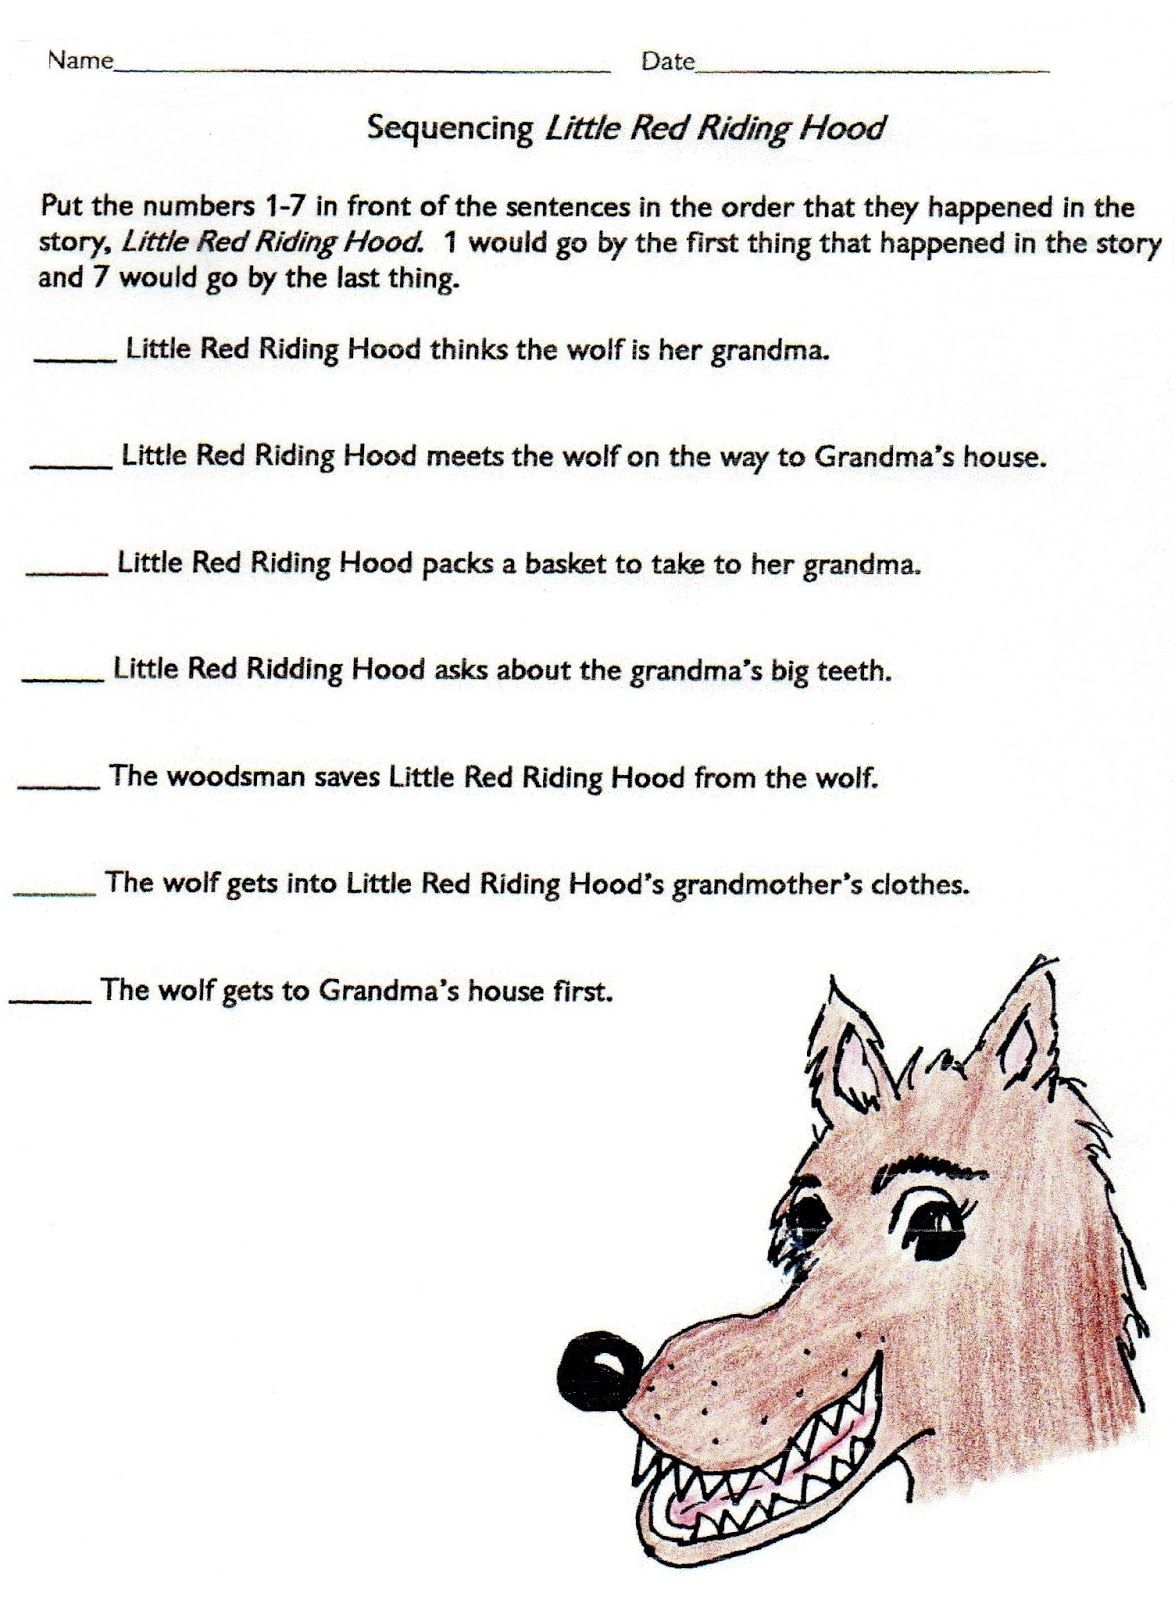 Sequencing Little Red Riding Hood